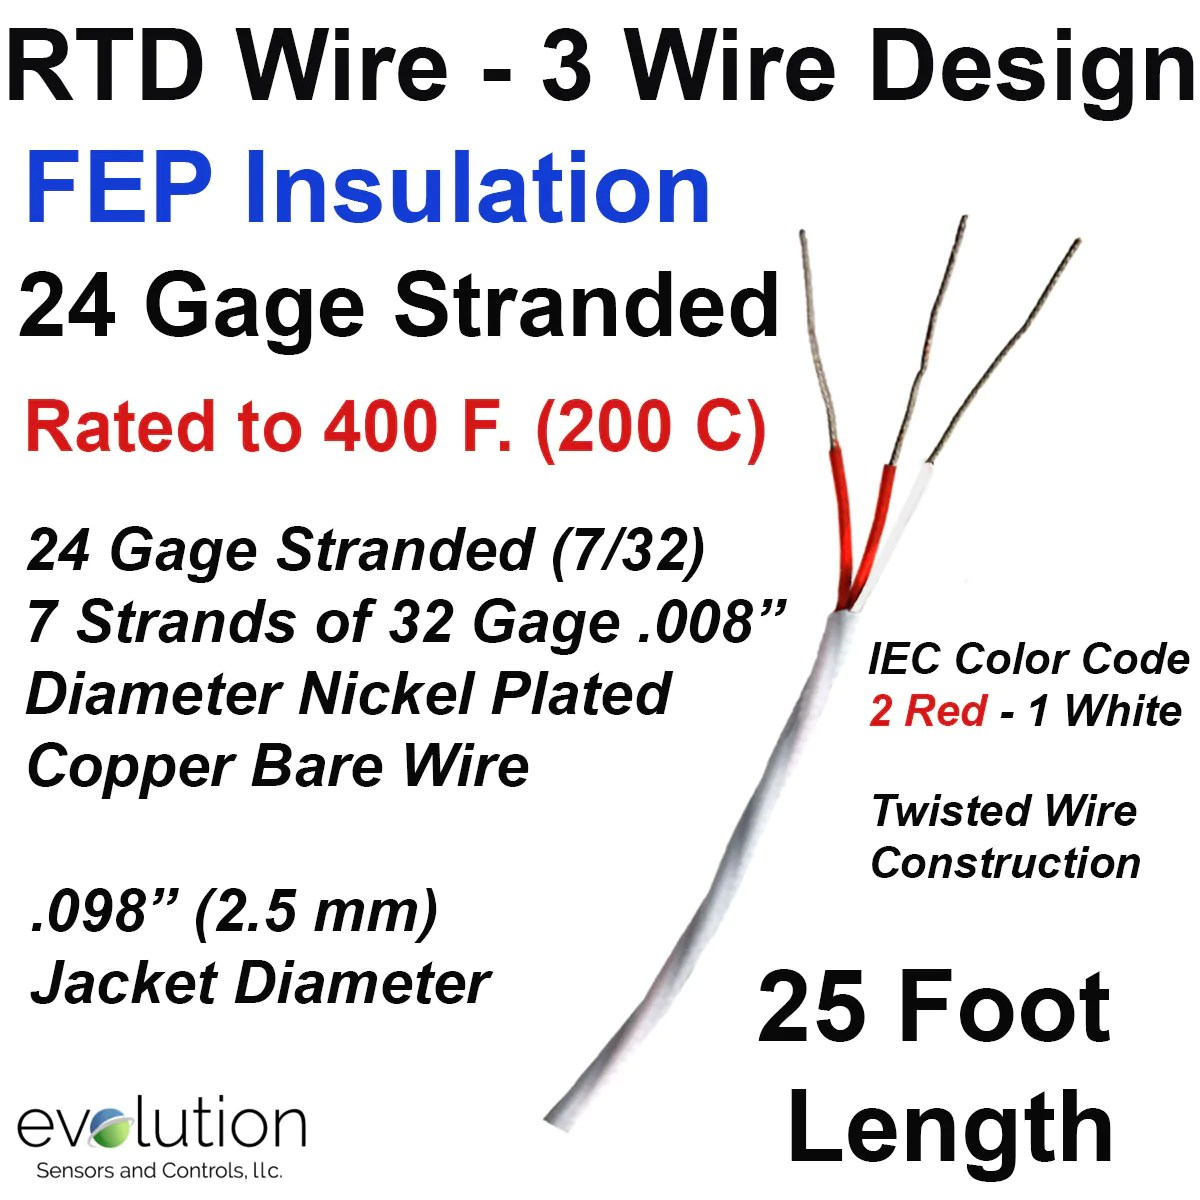 small resolution of rtd wiring color code home wiring diagram rtd 3 wire color code rtd wire 3 wire